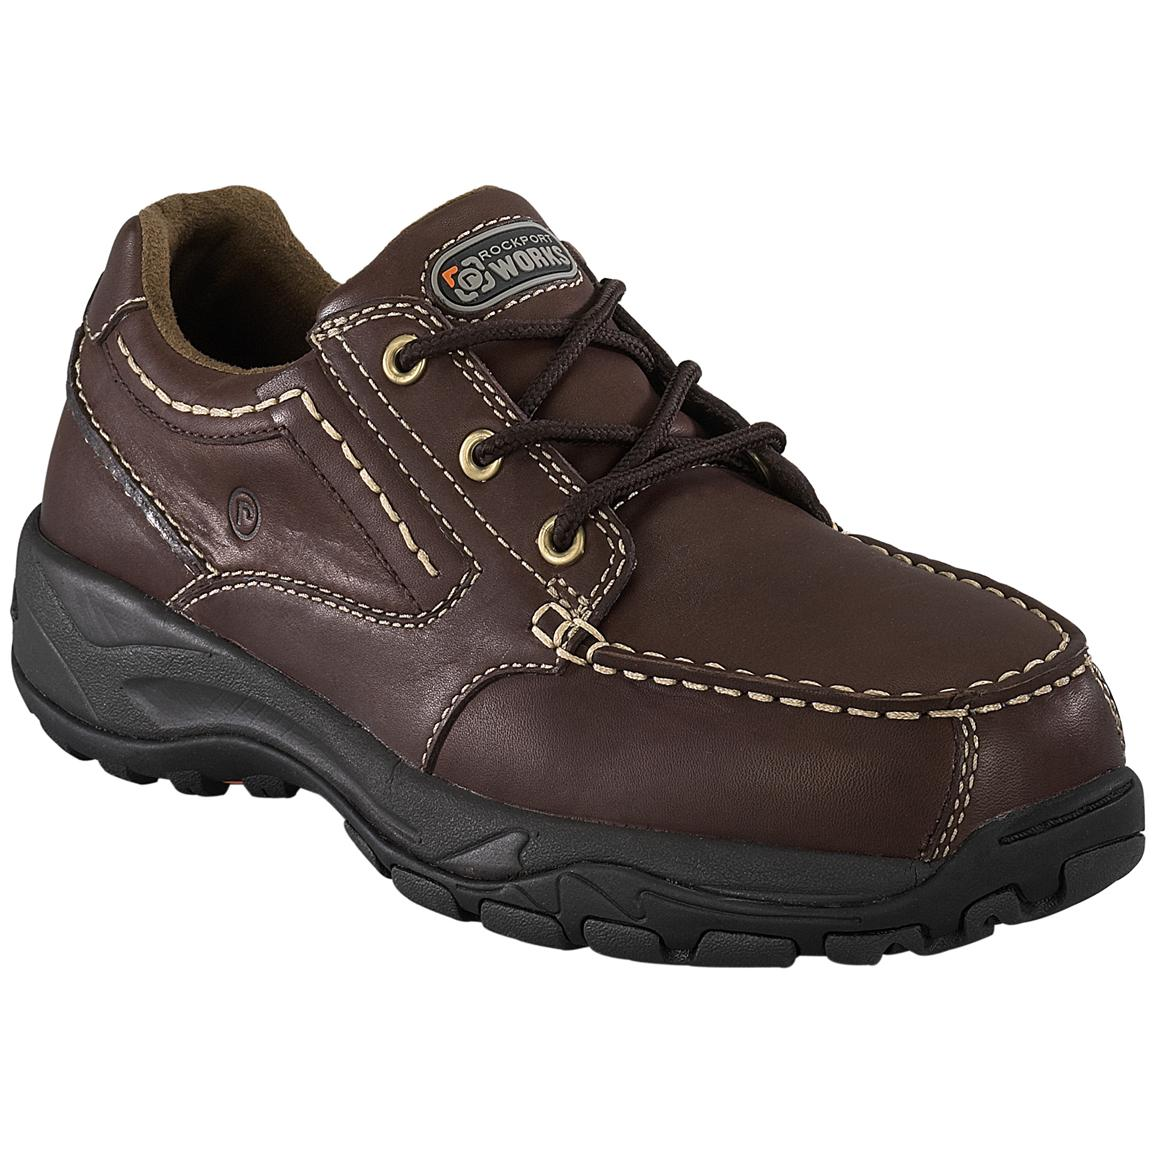 Men's Rockport Works RK6746 Composite Toe Work Shoes, Brown